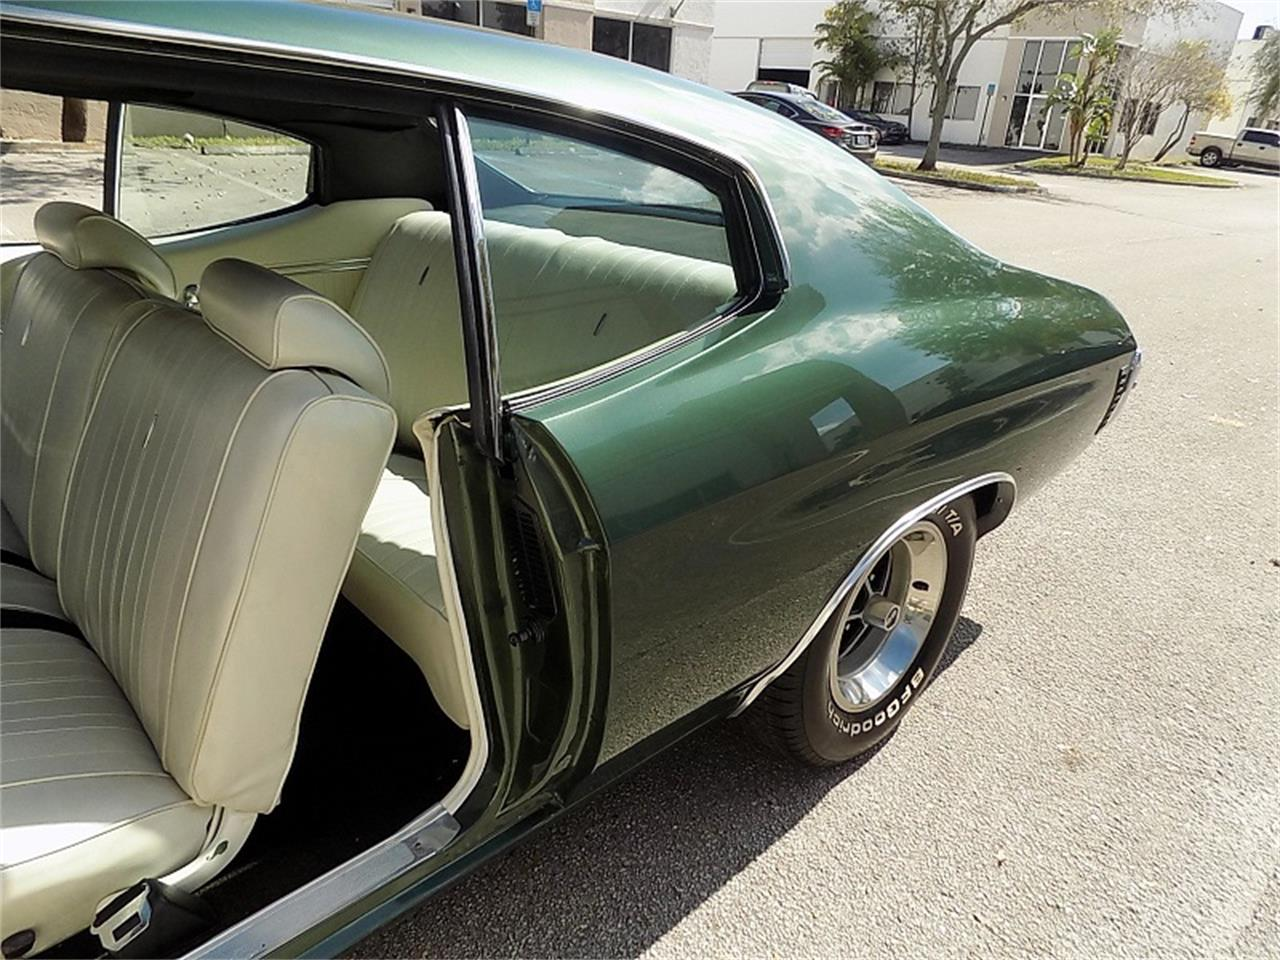 Large Picture of Classic '70 Chevelle SS located in POMPANO BEACH Florida - $38,500.00 - PF2R